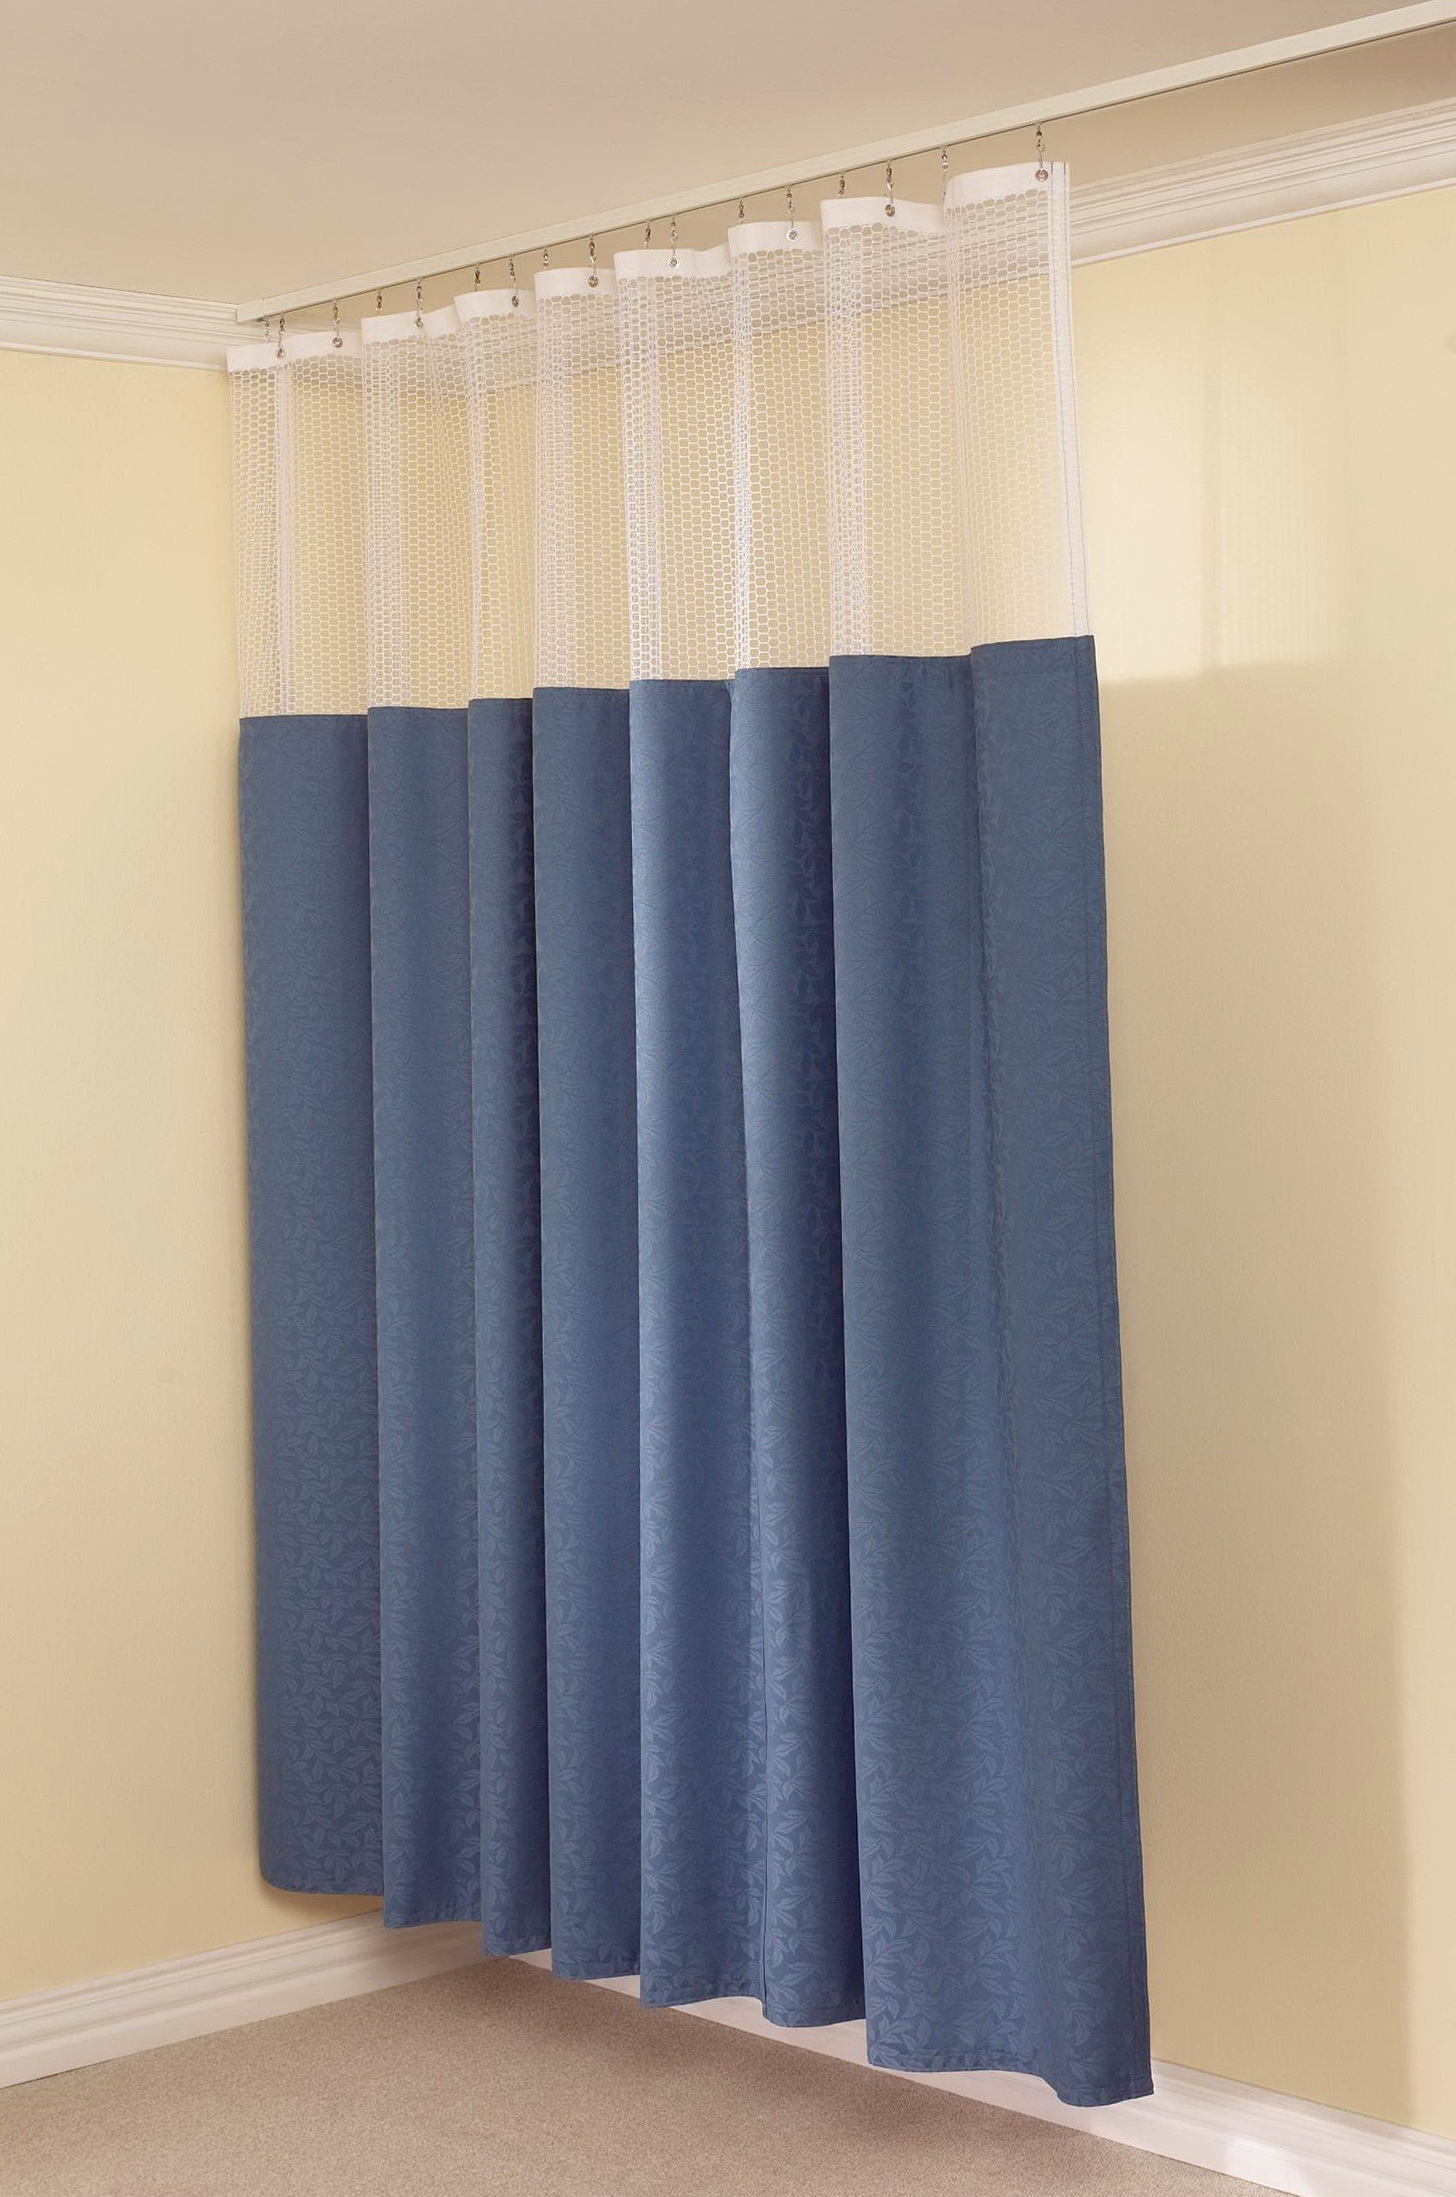 Superieur Hospital Shower Curtains Track Shower Curtain Regarding Sizing 1456 X 2197